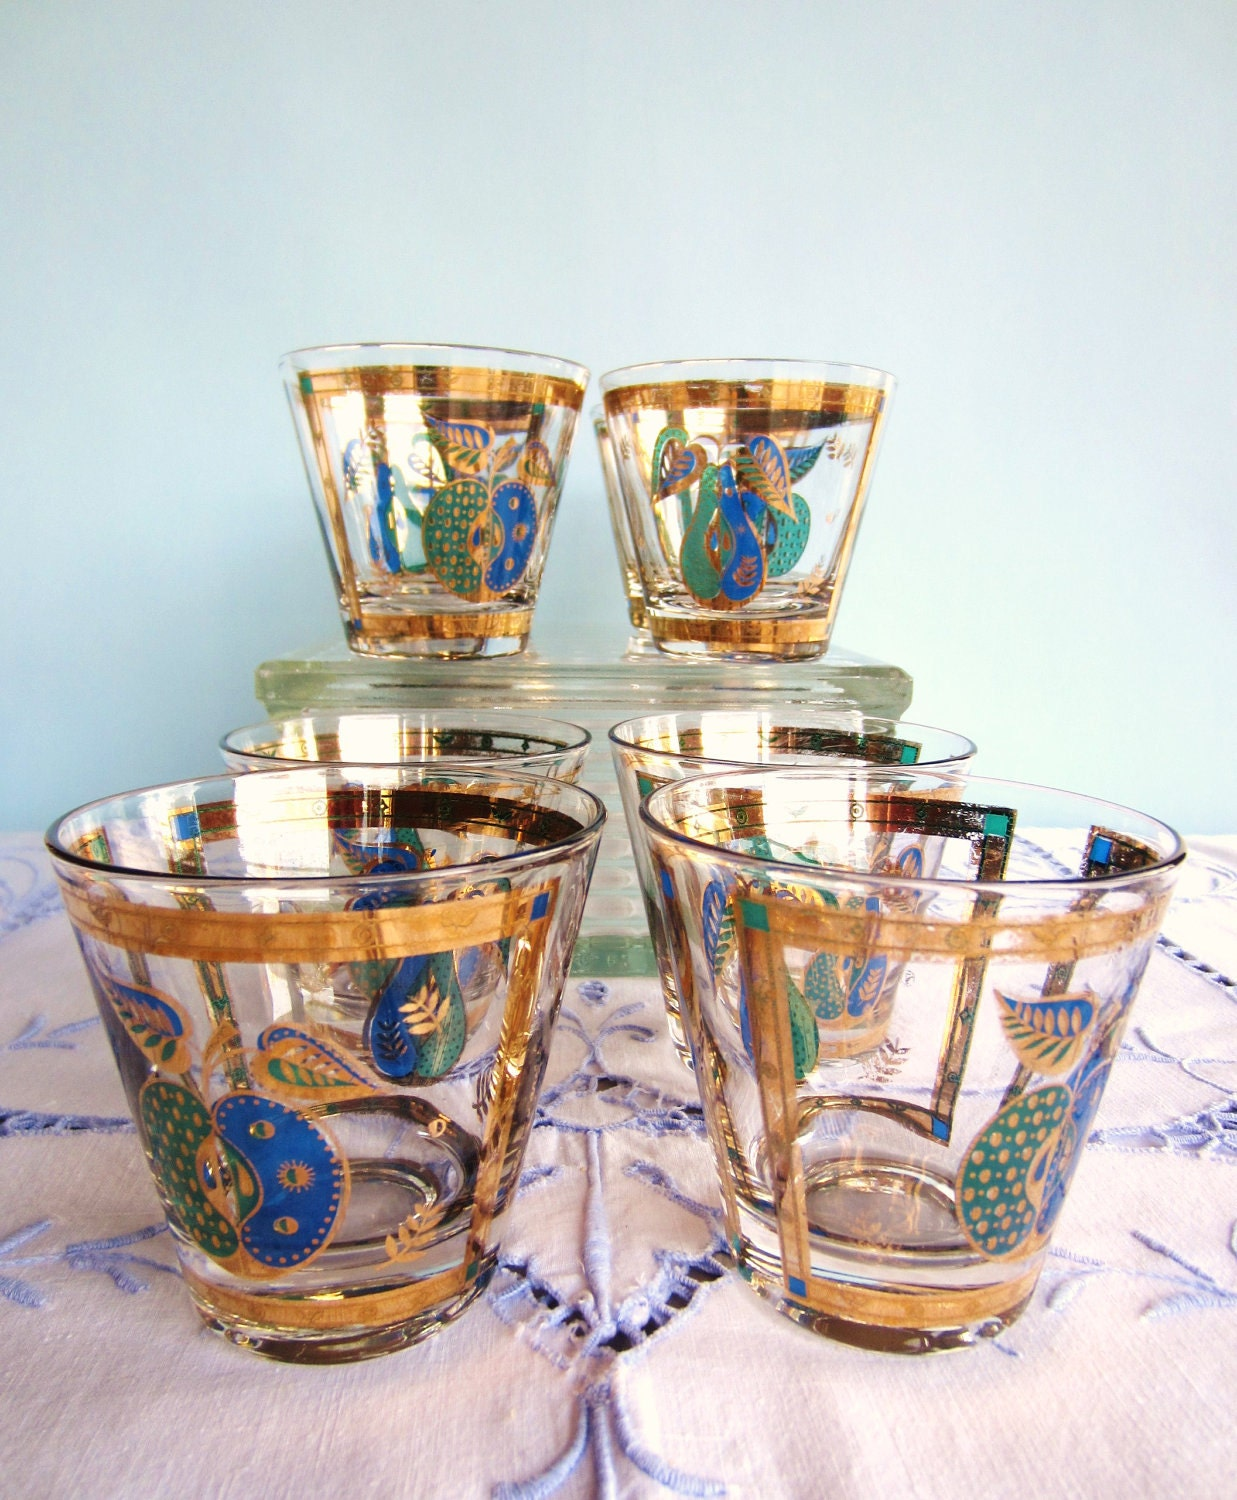 georges briard glassware forbidden fruit glasses 8 blue